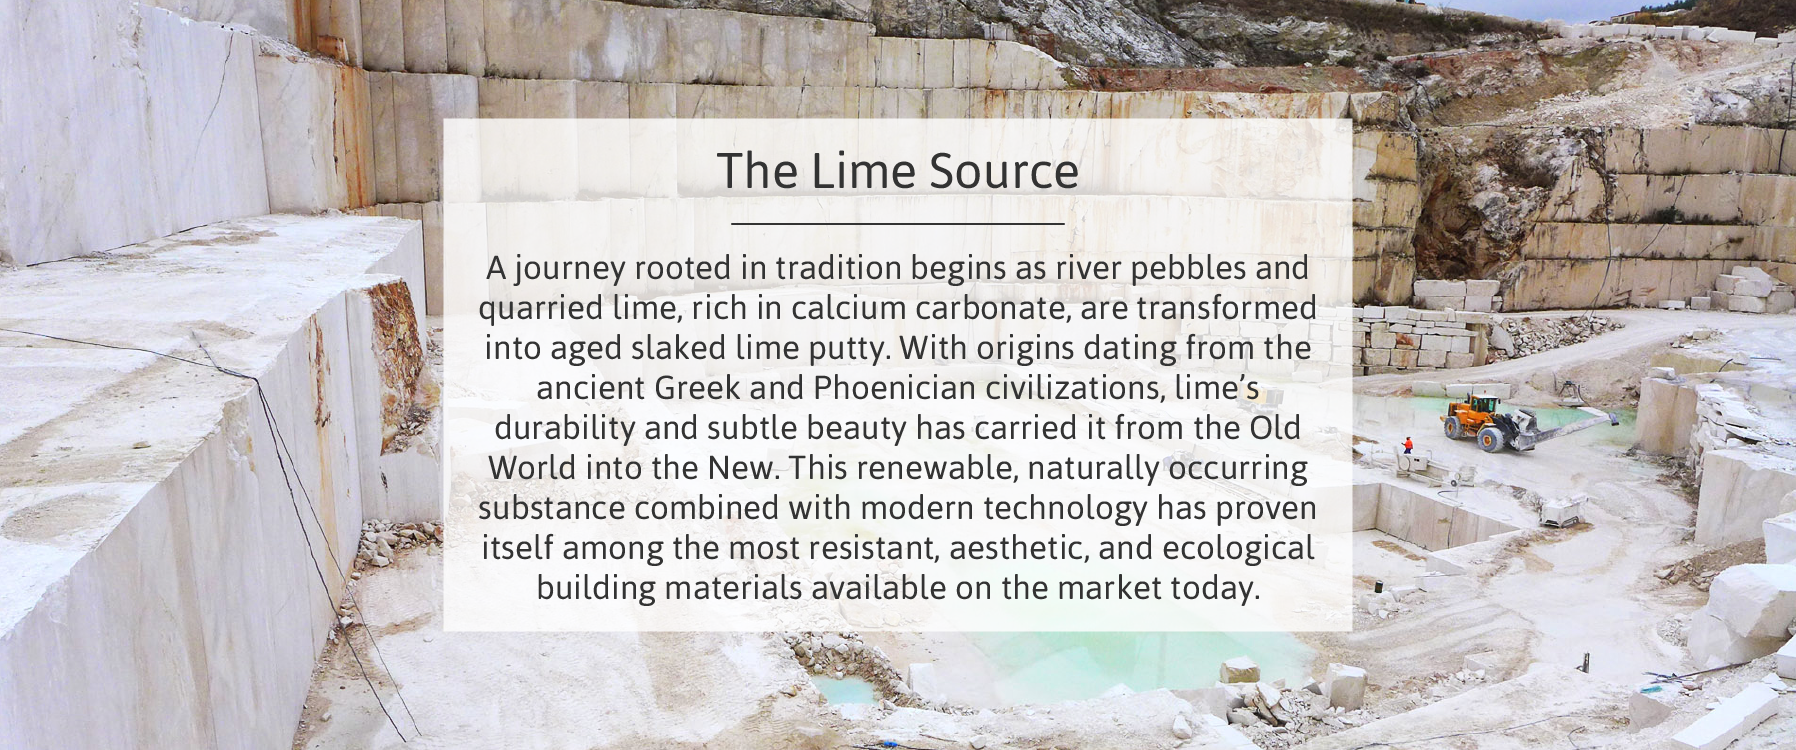 The lime source